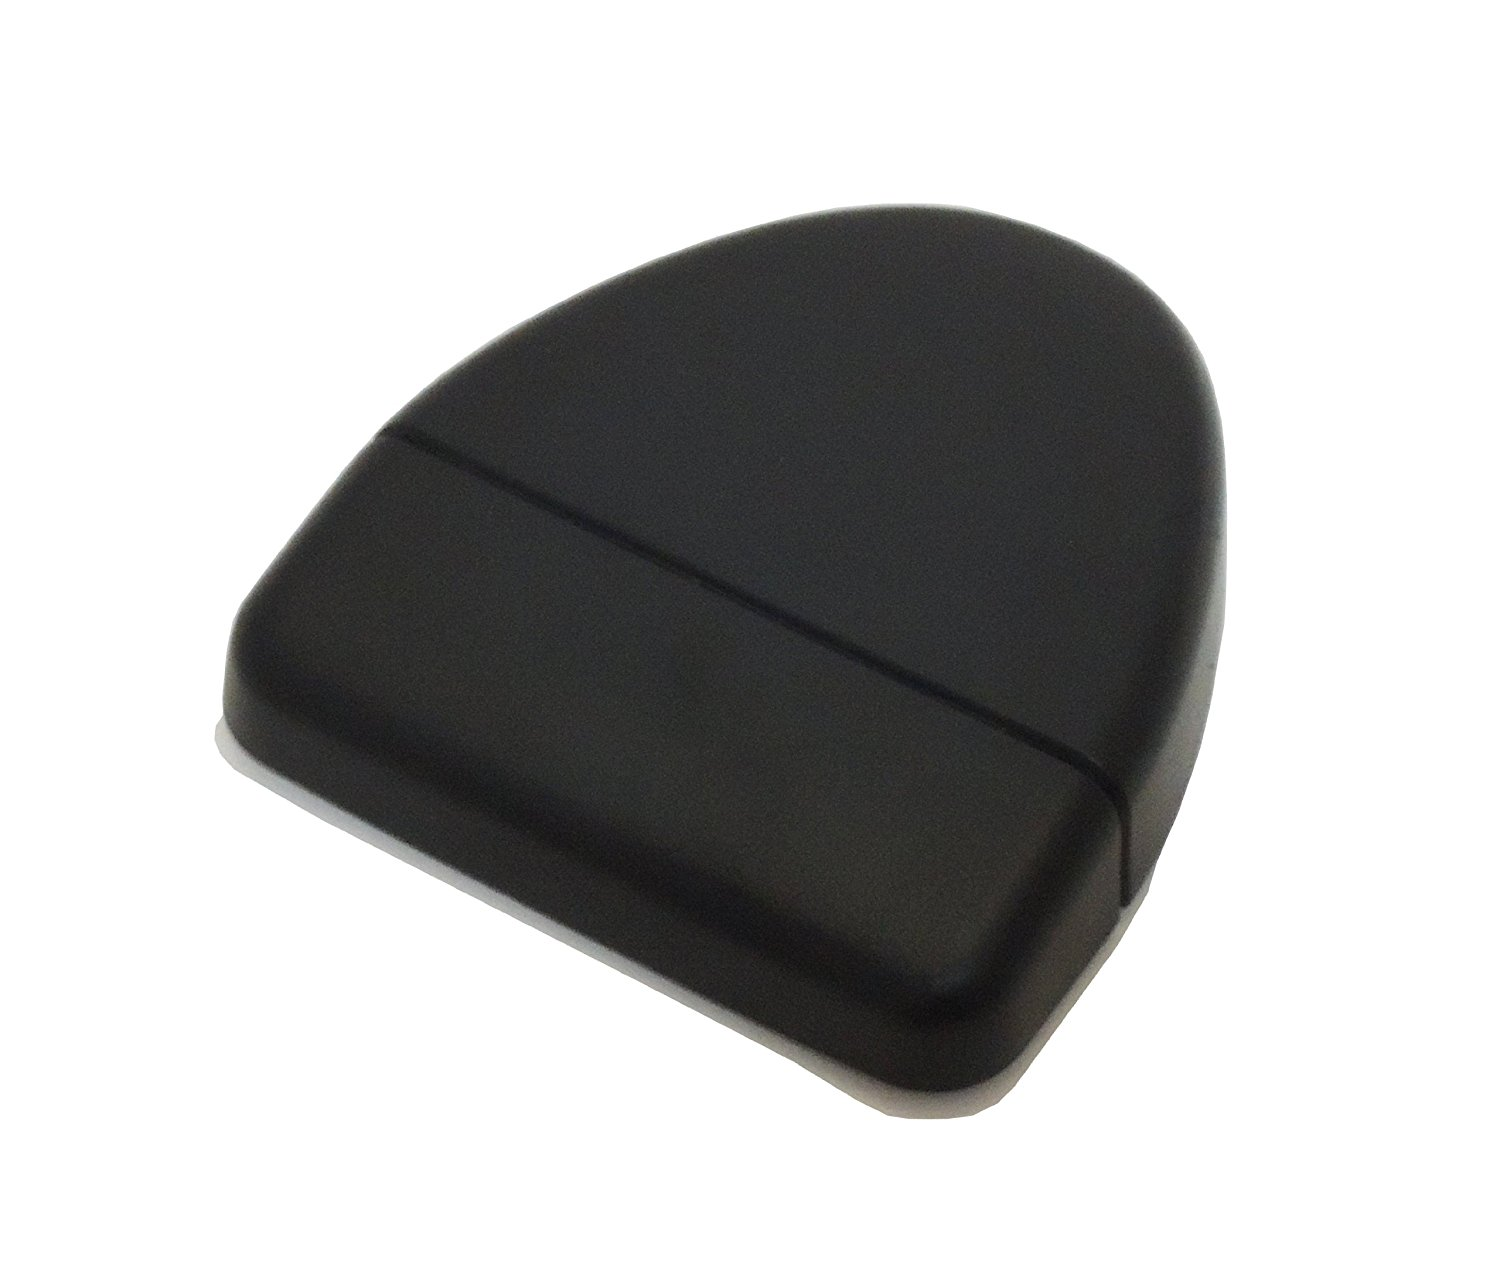 Rear Wiper Cover For VW Touareg First Gen. 2004-2010